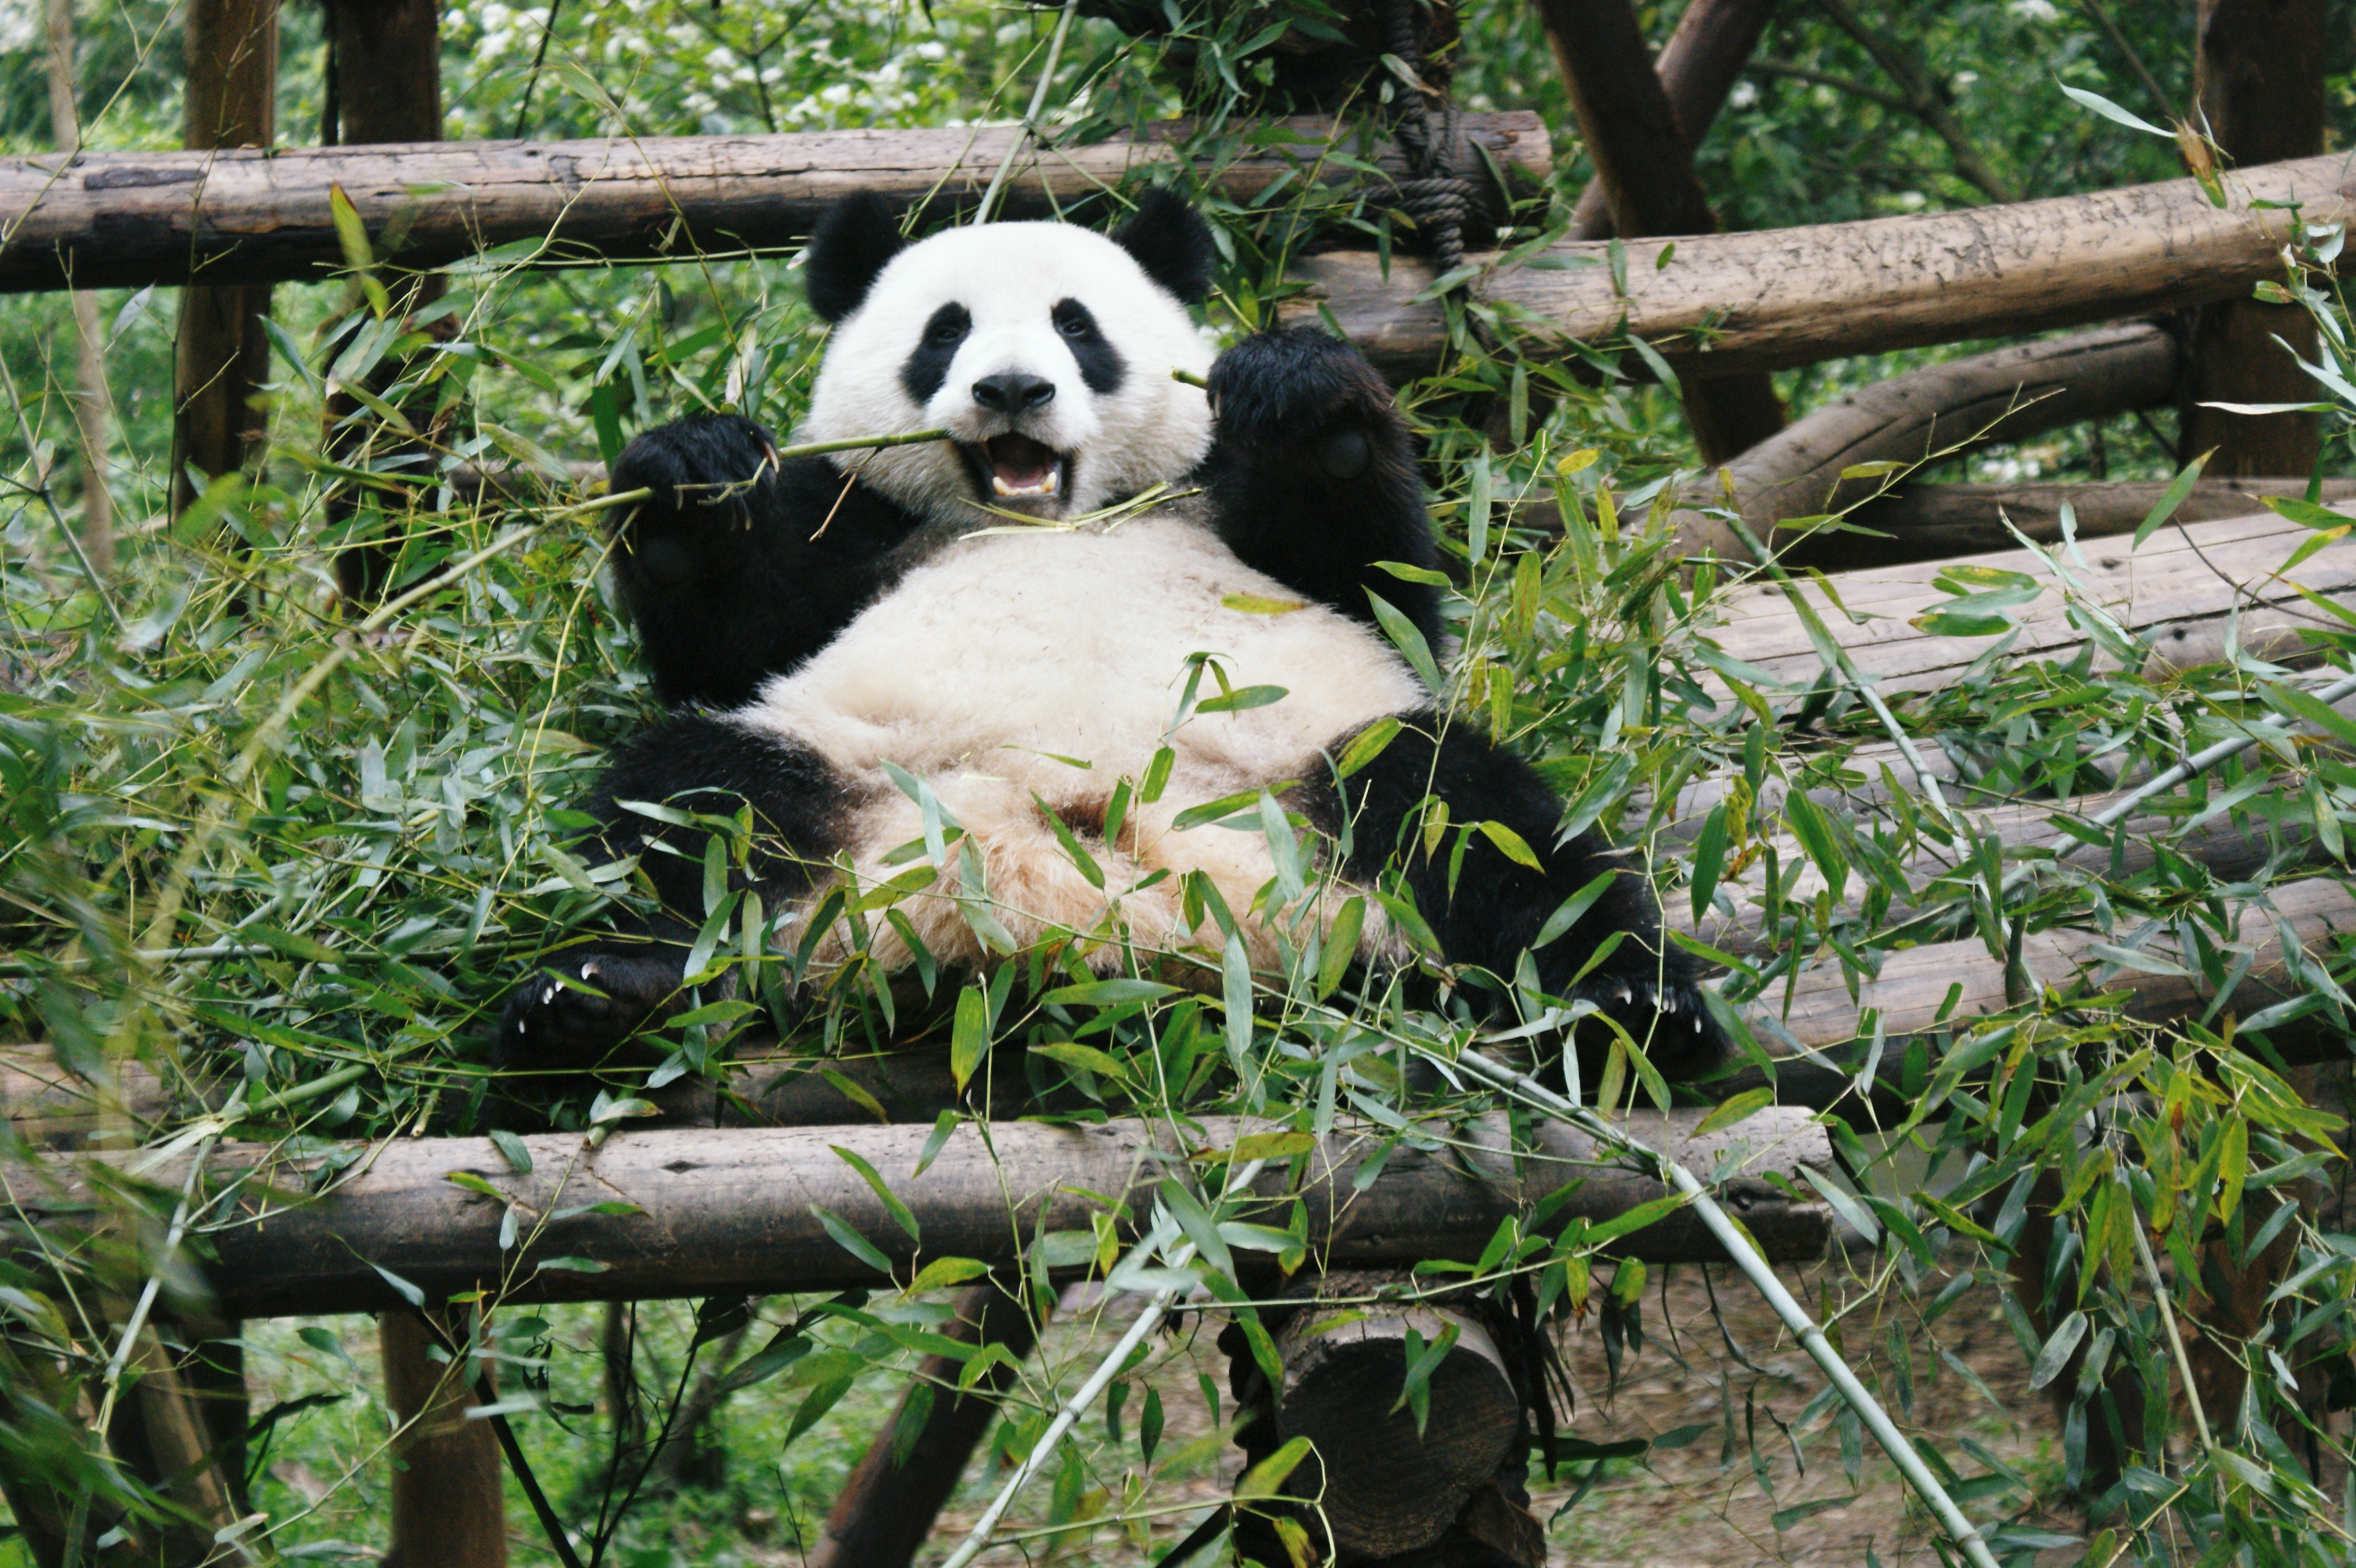 65209 download wallpaper Animals, Panda, Animal, Bamboo, Bear, Branches, Leaves screensavers and pictures for free